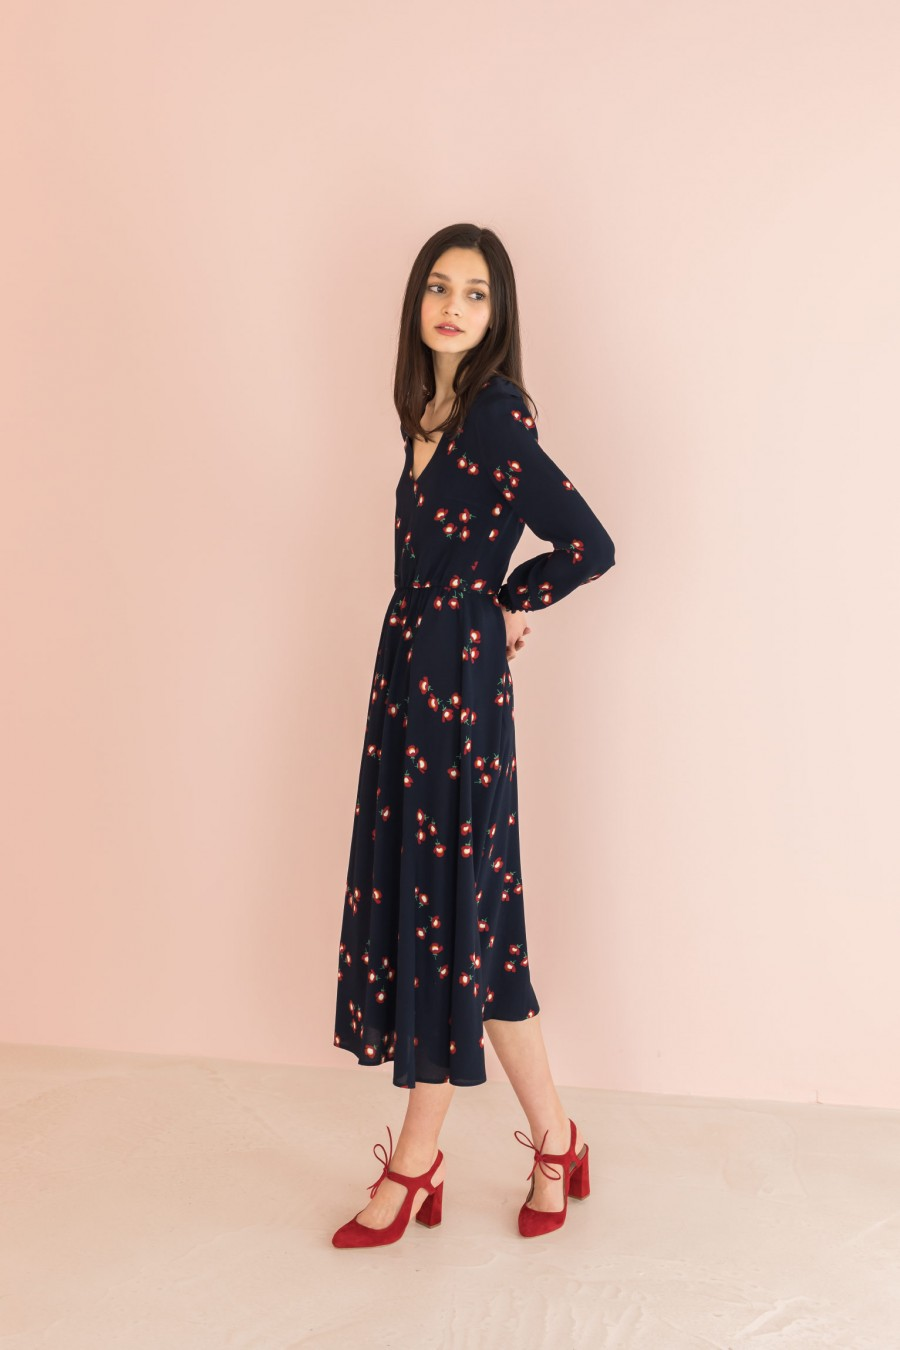 long dress with red flowers